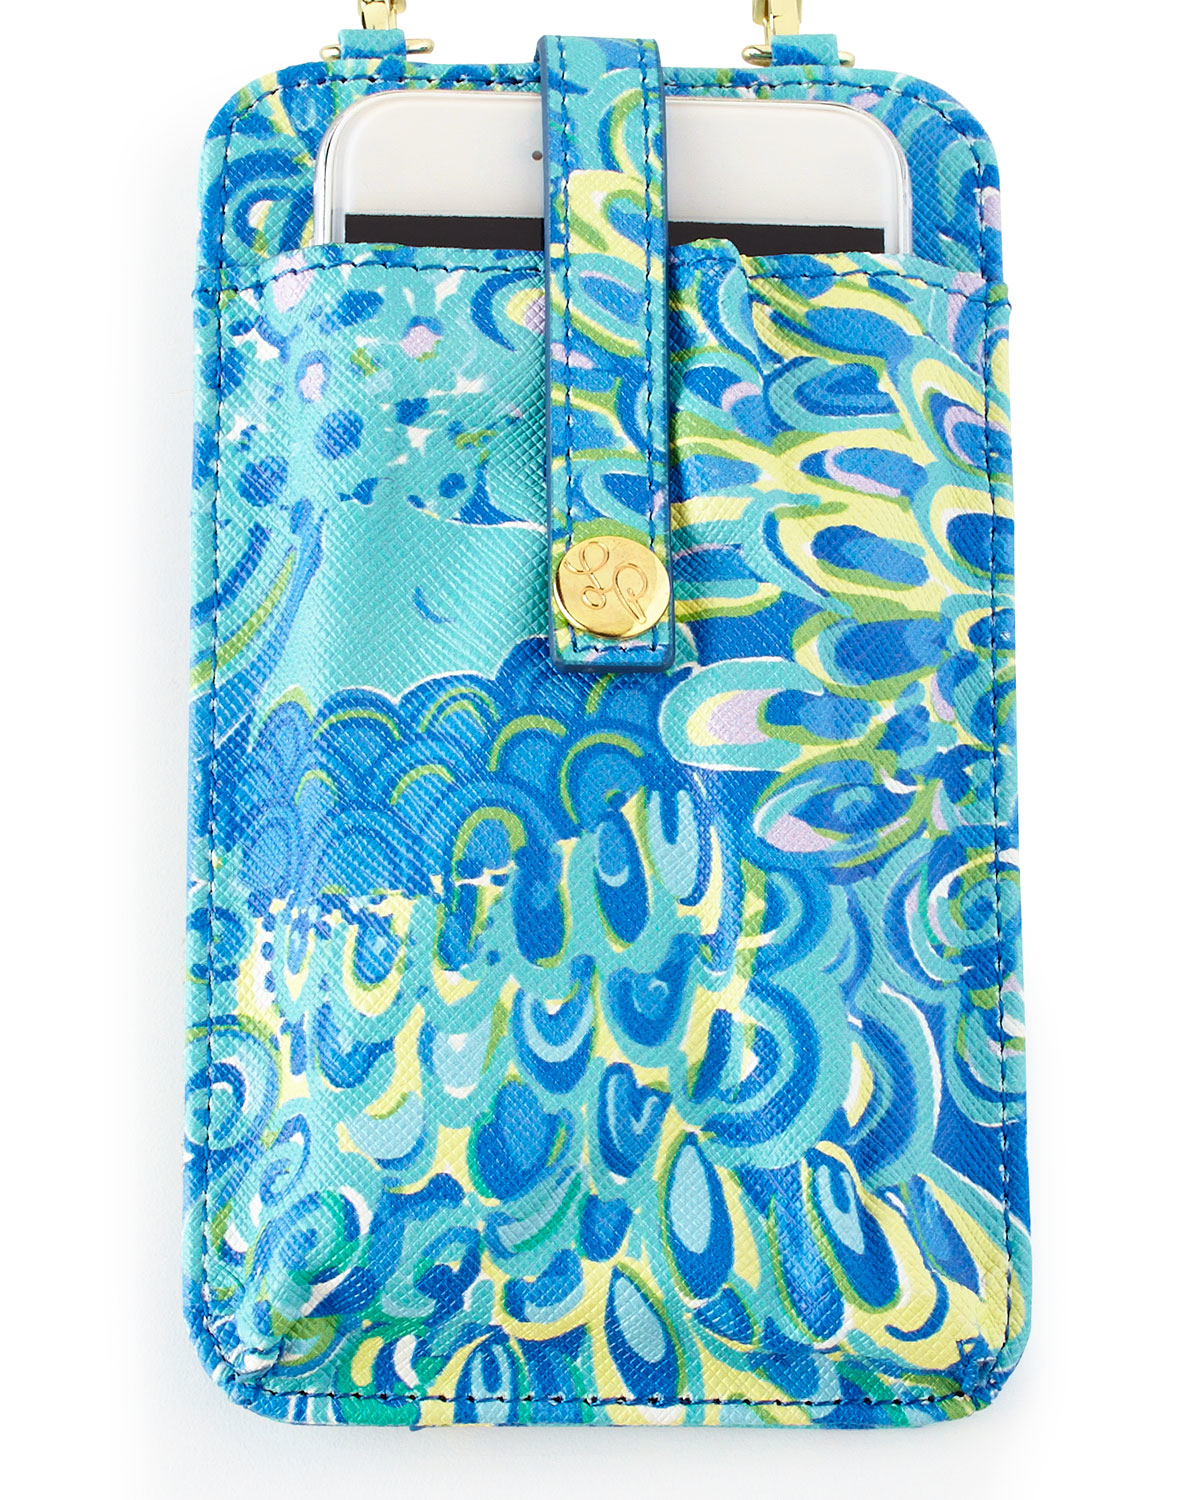 Lilly Pulitzer Wristlet Wallet | Lilly Pulitzer Phone Wristlet | Lilly Pulitzer Phone Case